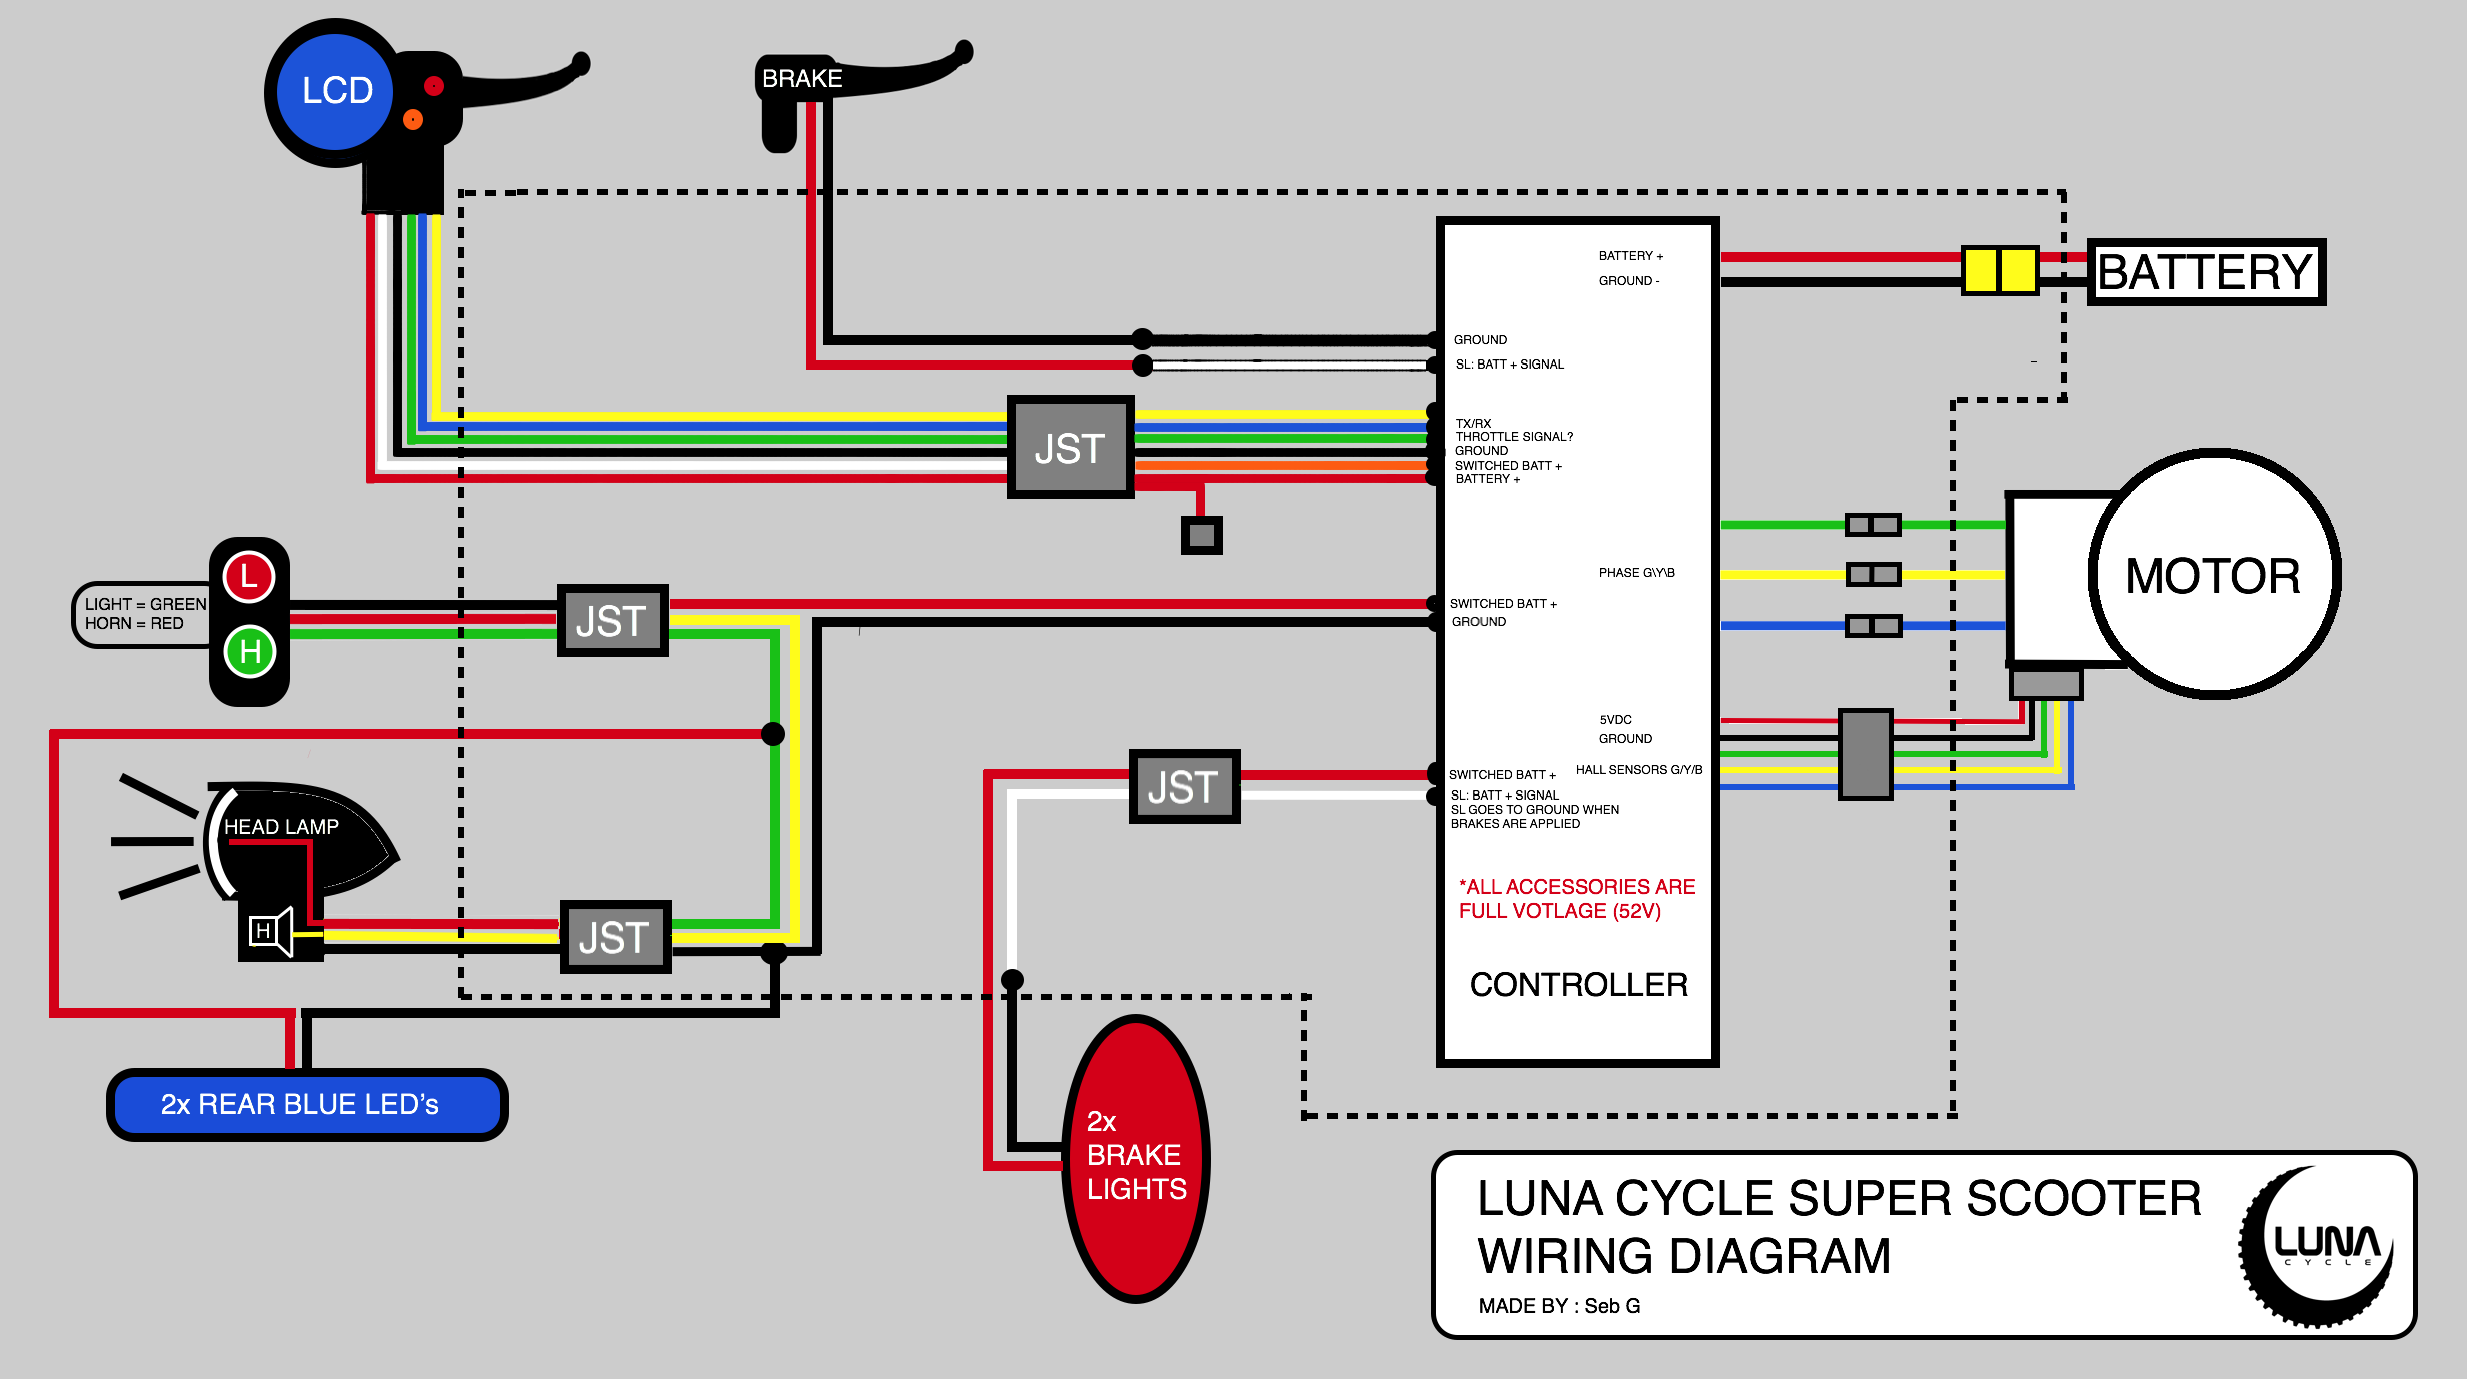 Pulse Electric Scooter Wiring Diagram - 23 Hp Vanguard Wiring Diagram For -  electrical-wiring.yenpancane.jeanjaures37.fr | Pulse Scooter Battery Wiring Diagrams |  | Wiring Diagram Resource